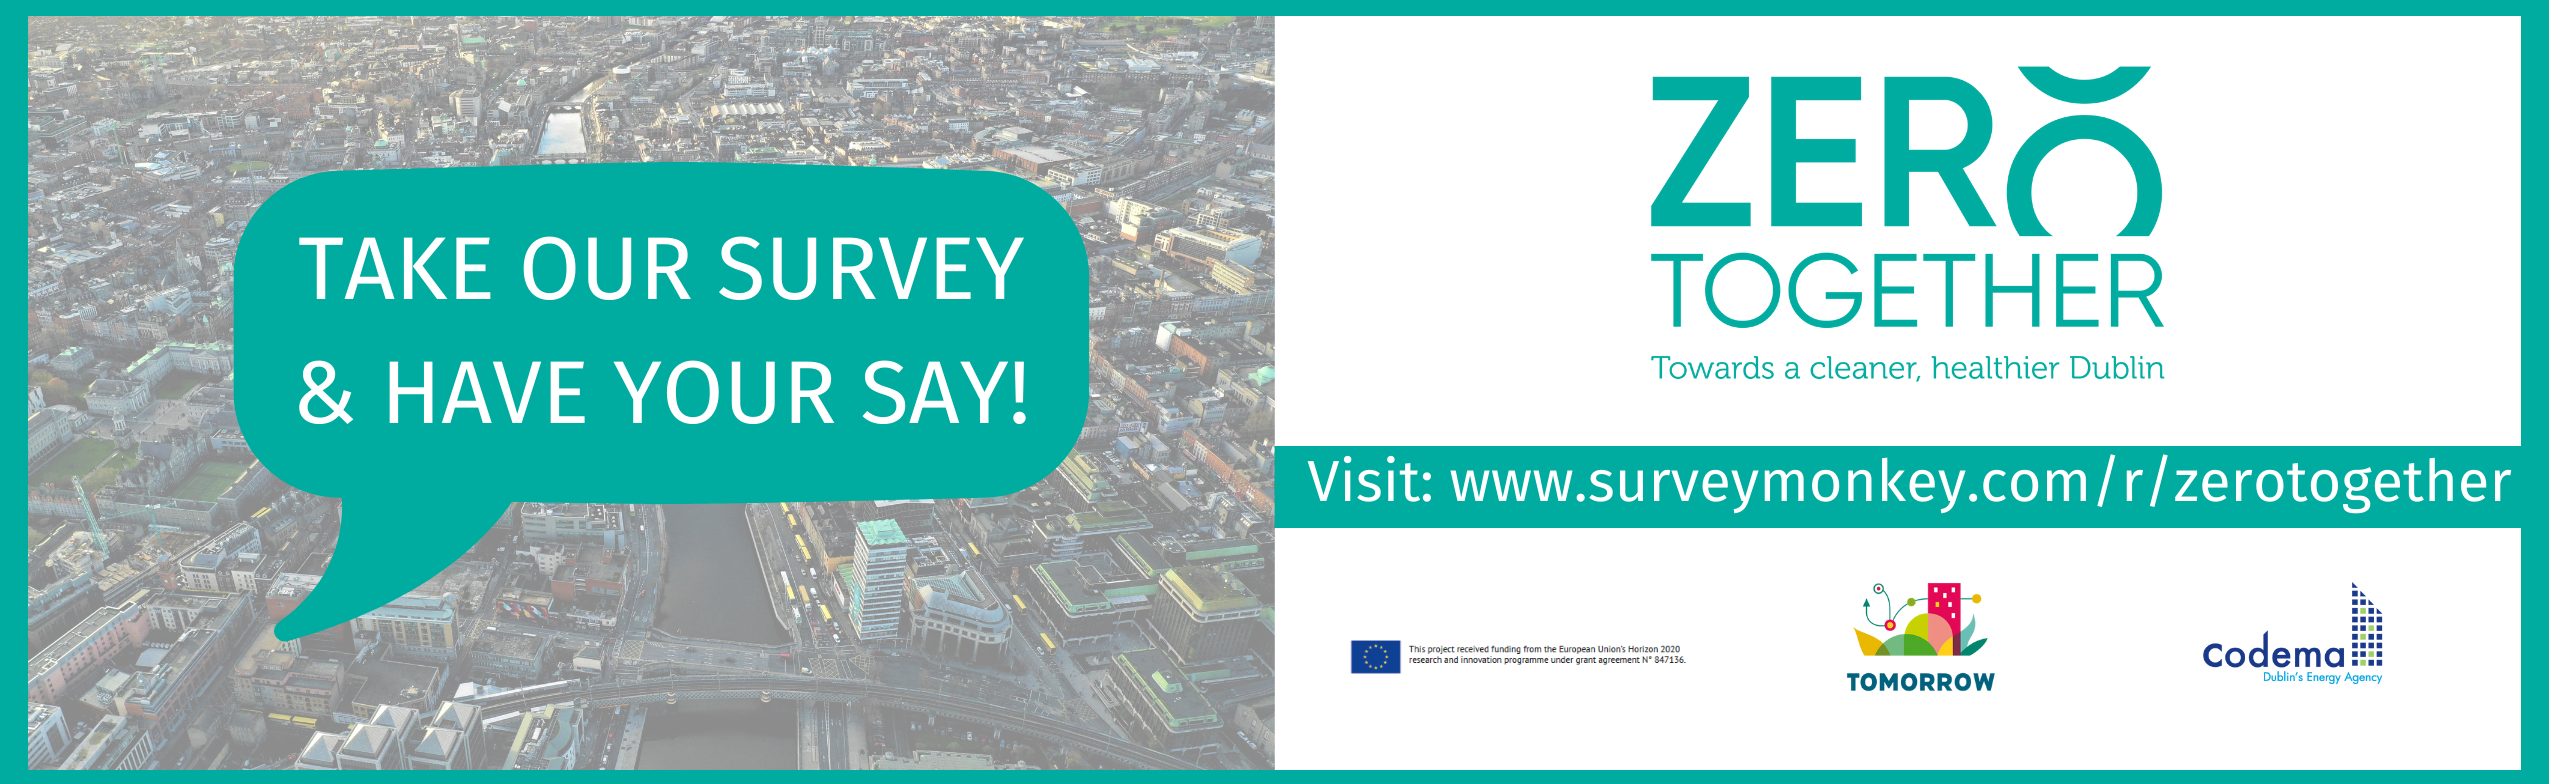 Take our survey and have your say!